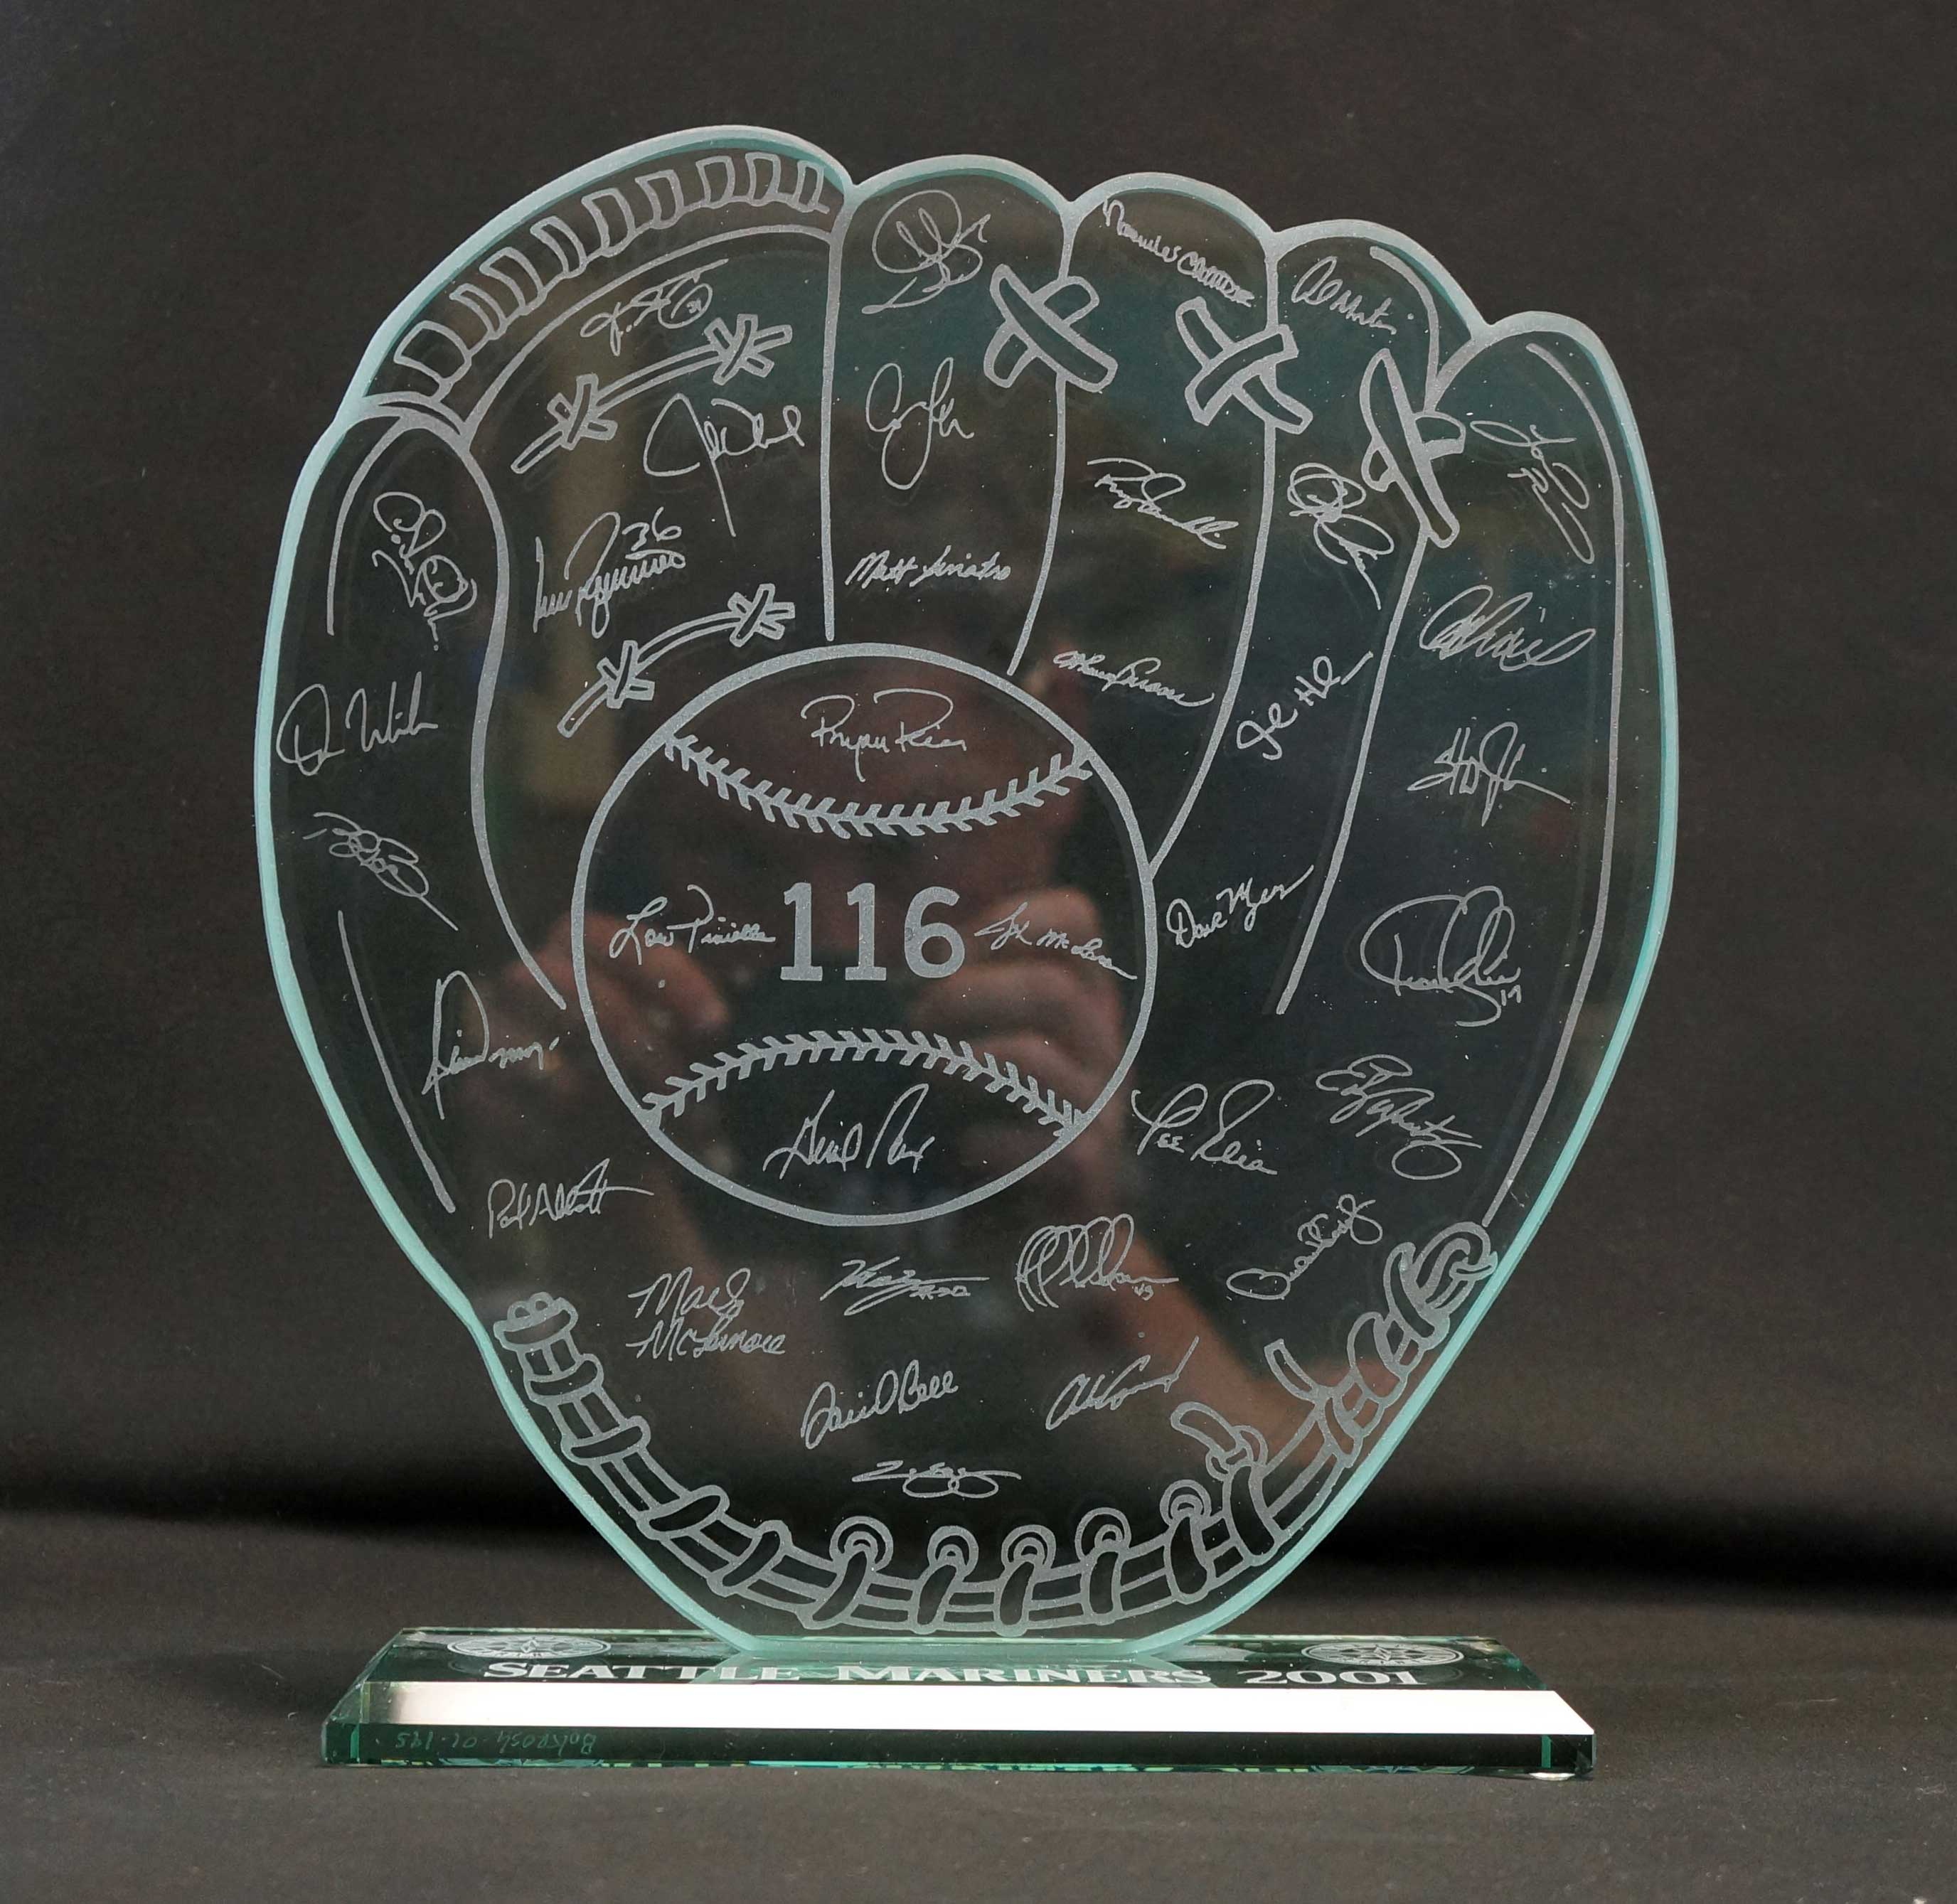 Lot 199 2001 Seattle Mariners Glass Trophy Numbered 195 of 325